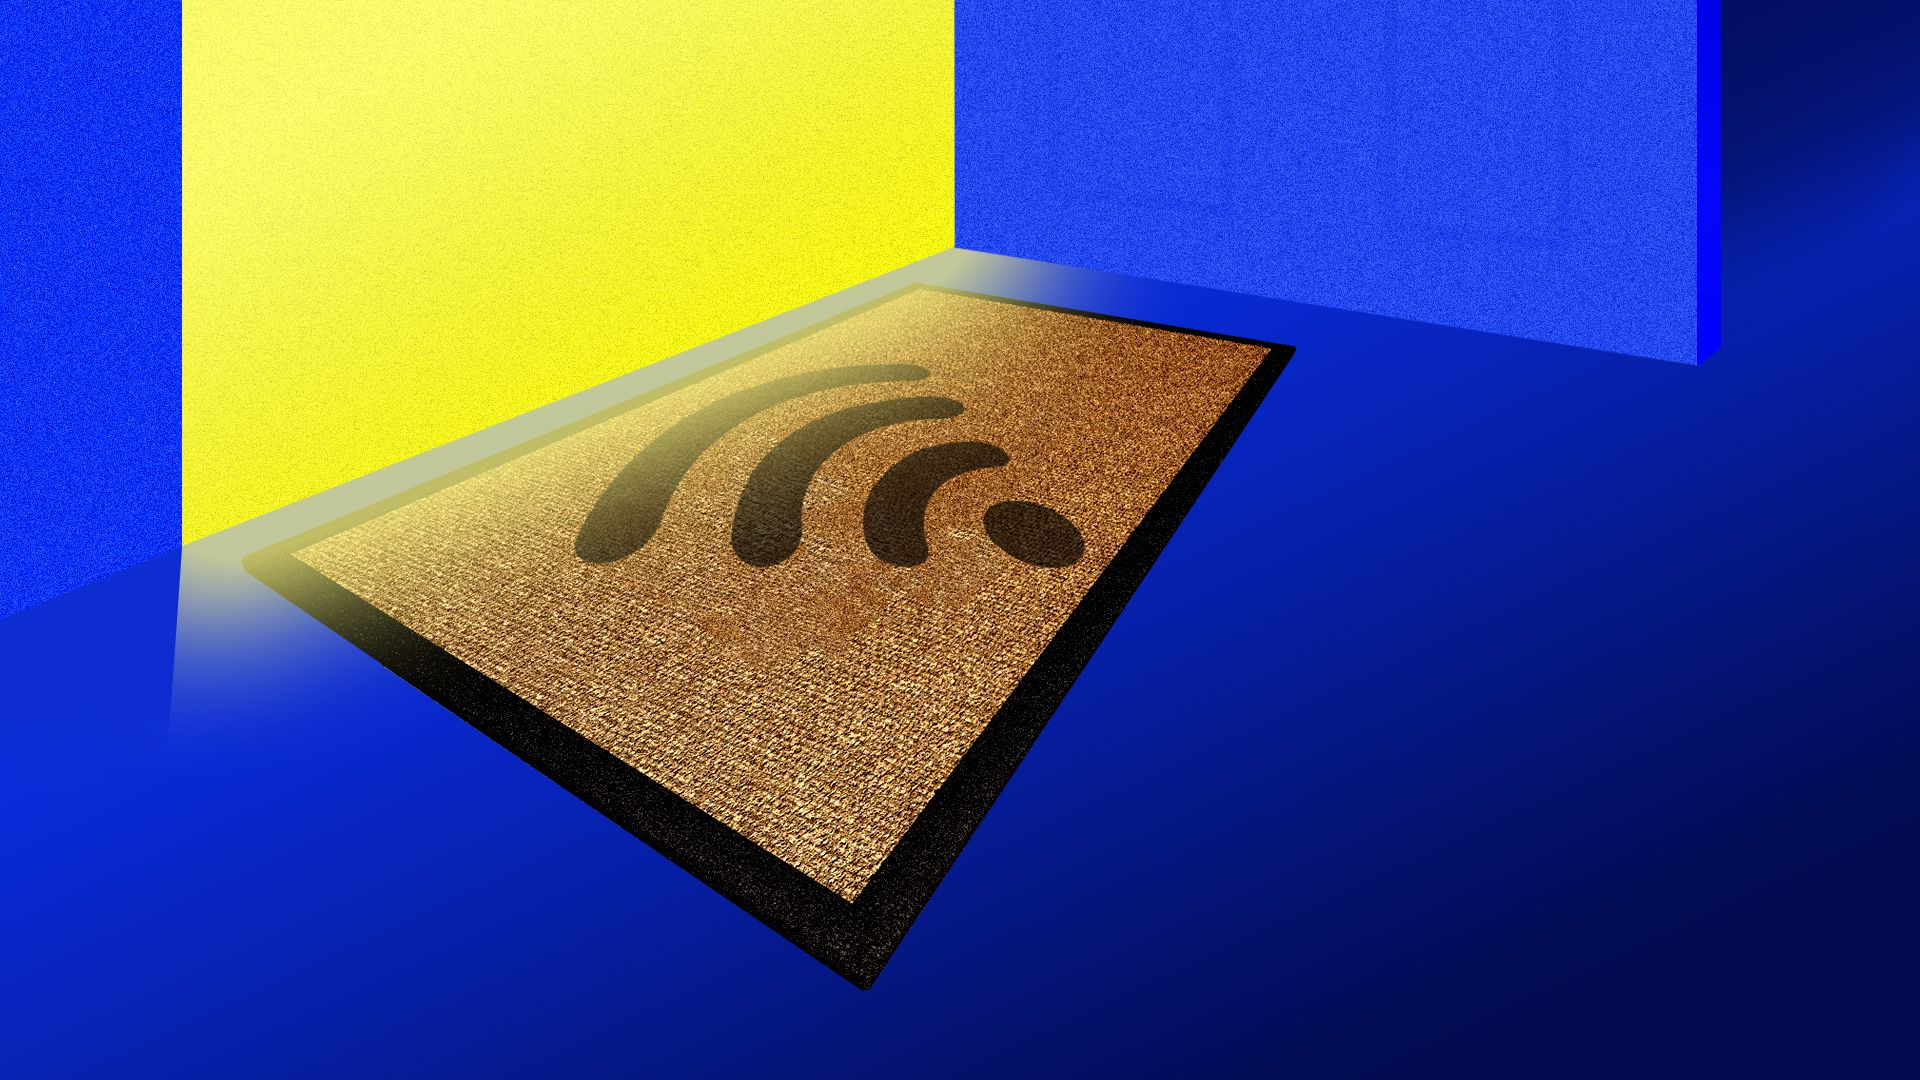 A doormat with a wifi symbol